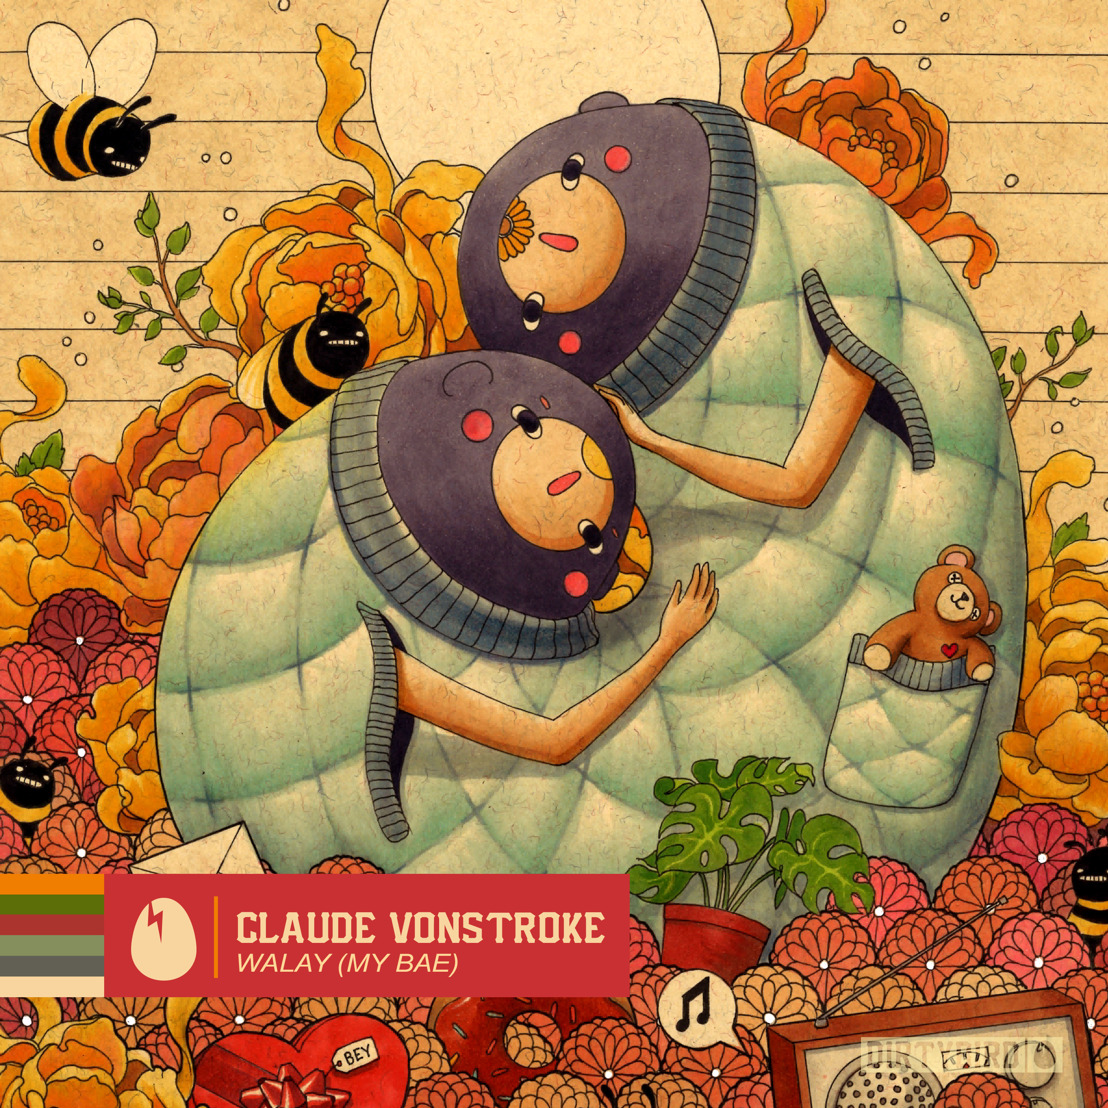 Claude VonStroke Announces 'Walay (My Bae)' EP